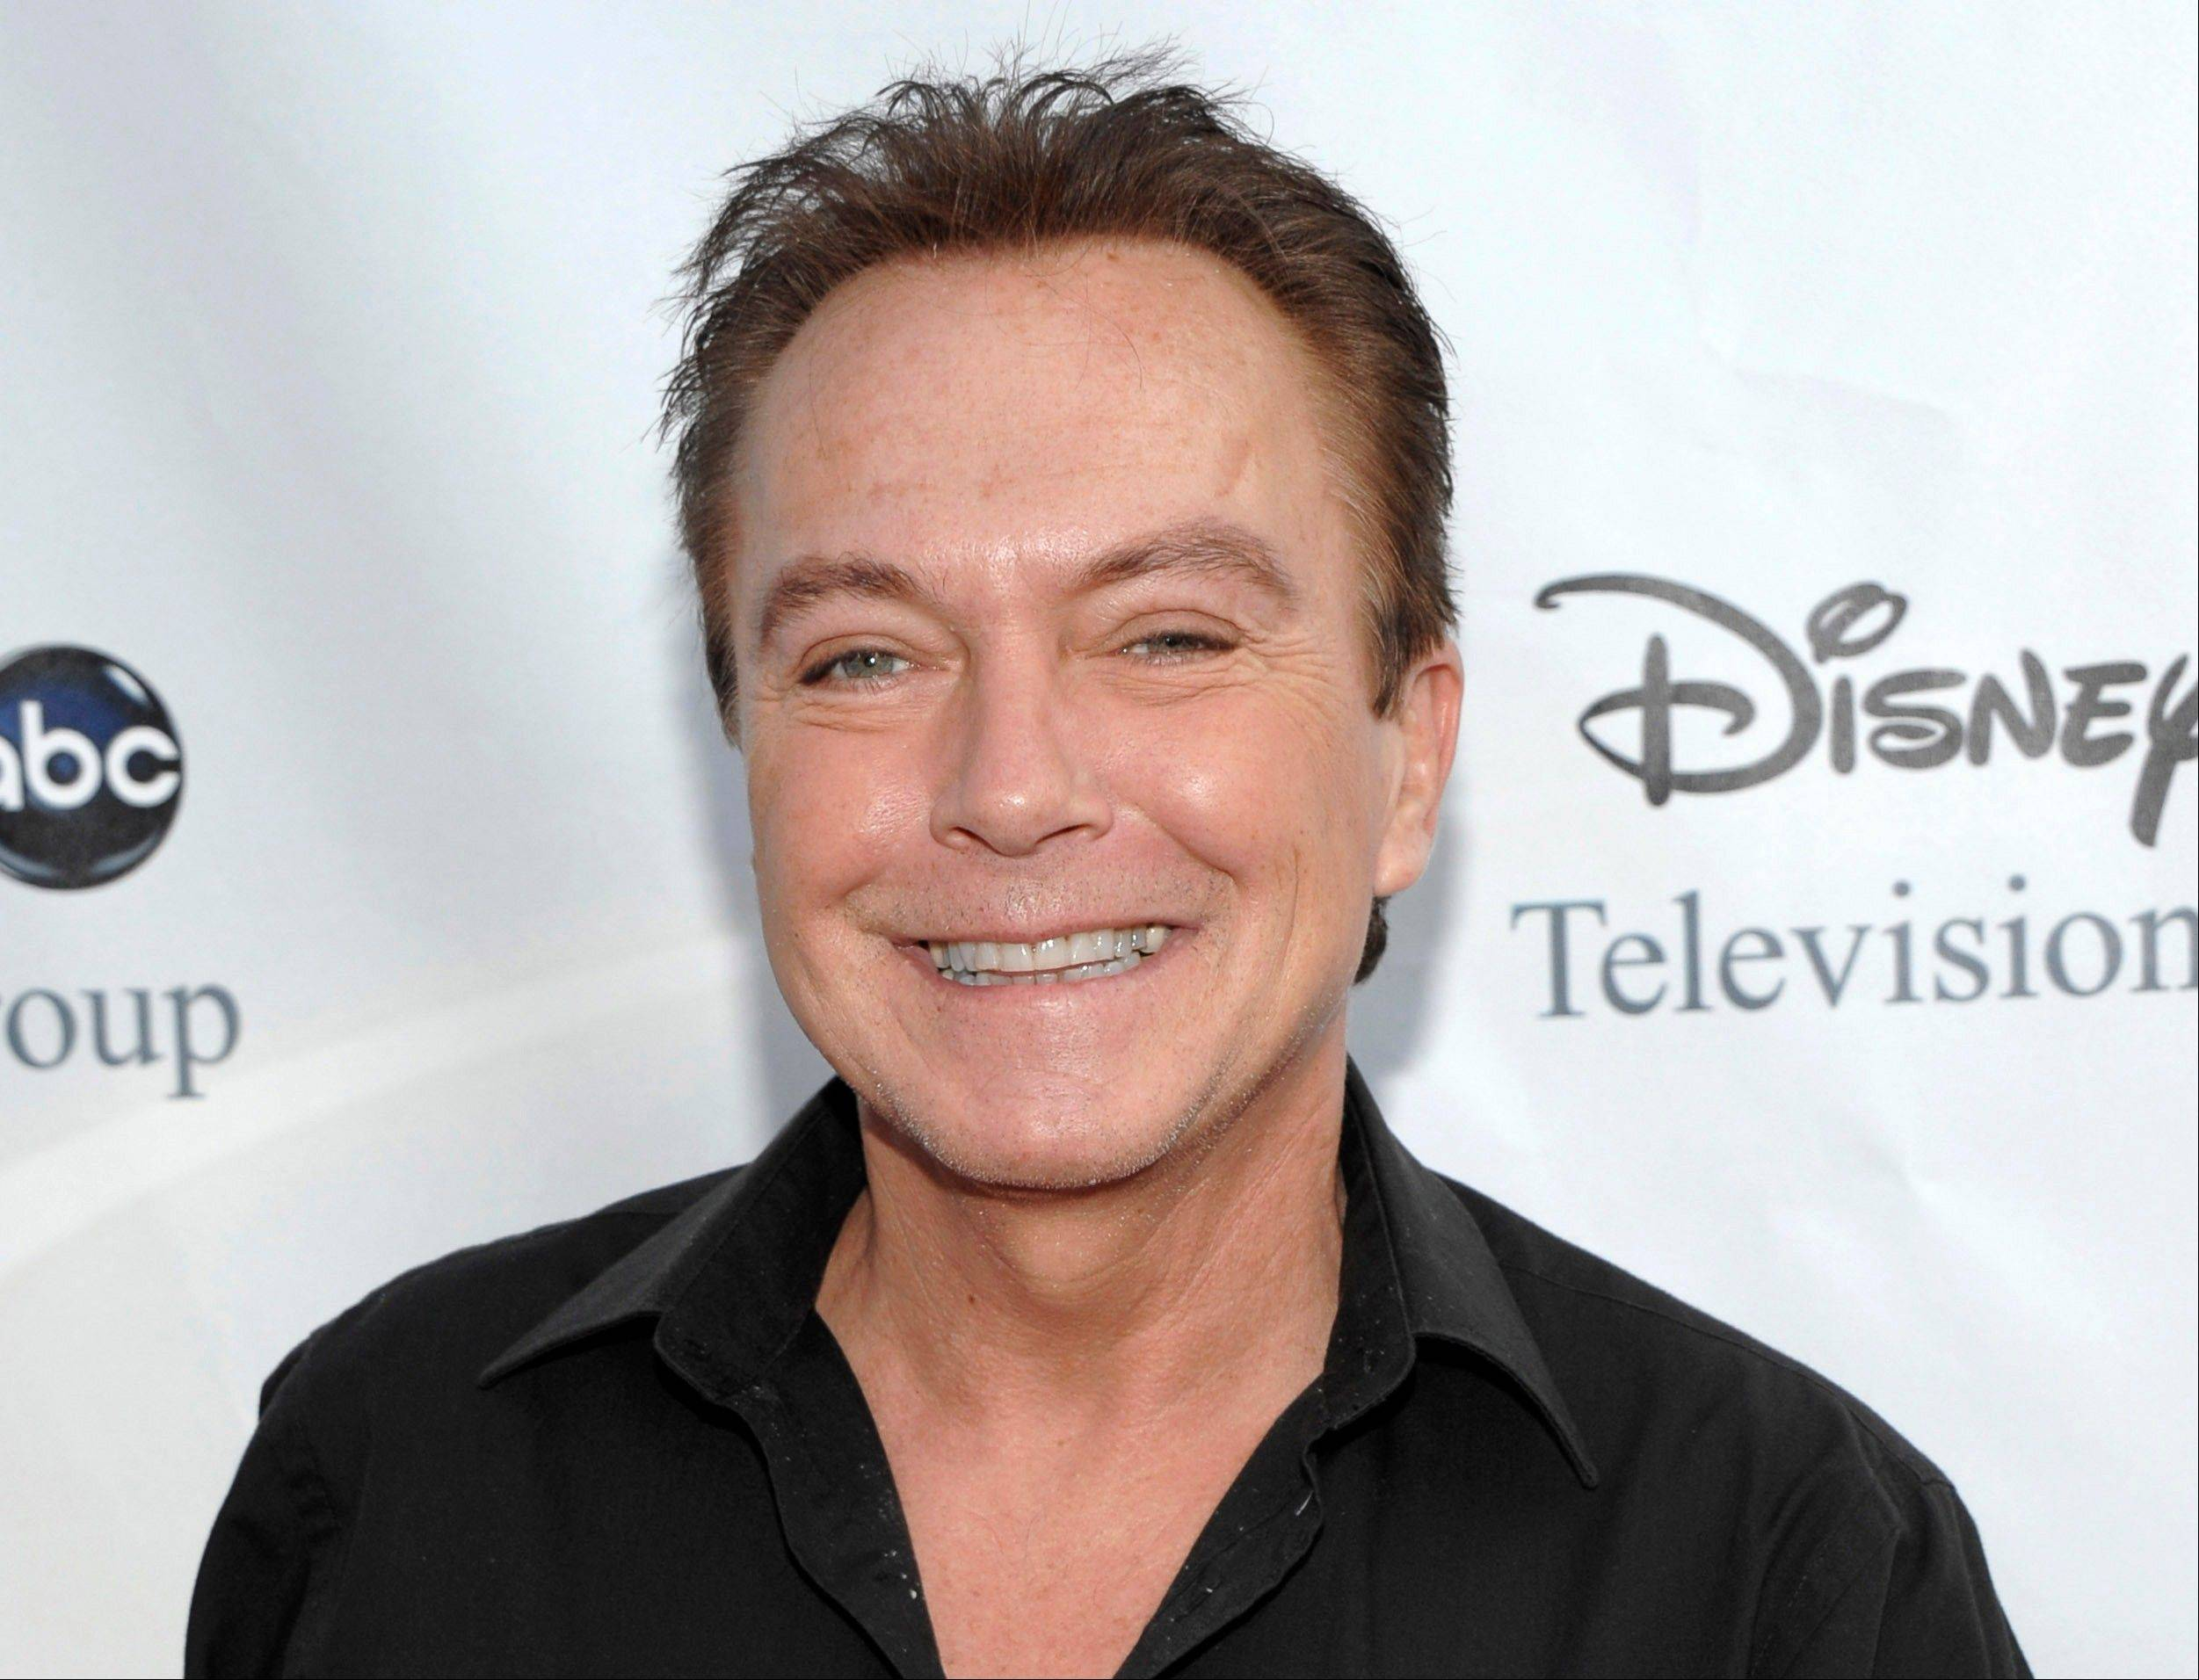 David Cassidy is free on $2,500 bail after being charged with felony driving while intoxicated in upstate New York.